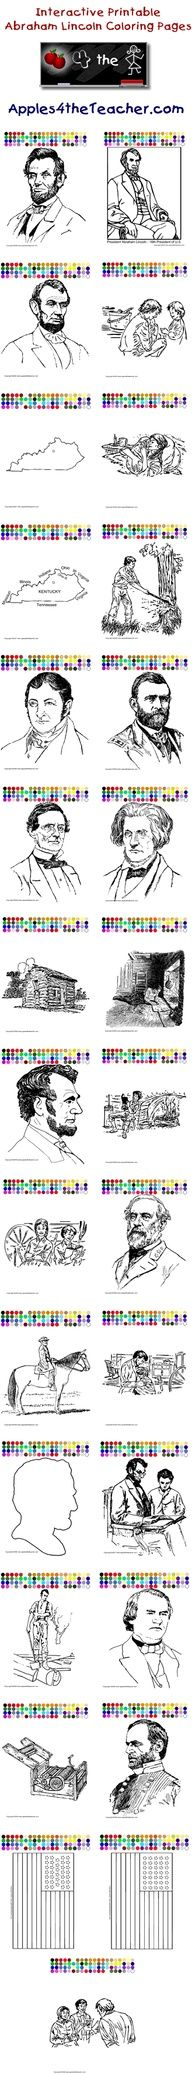 Printable interactive U.S. President coloring pages, U.S. Presidents ...